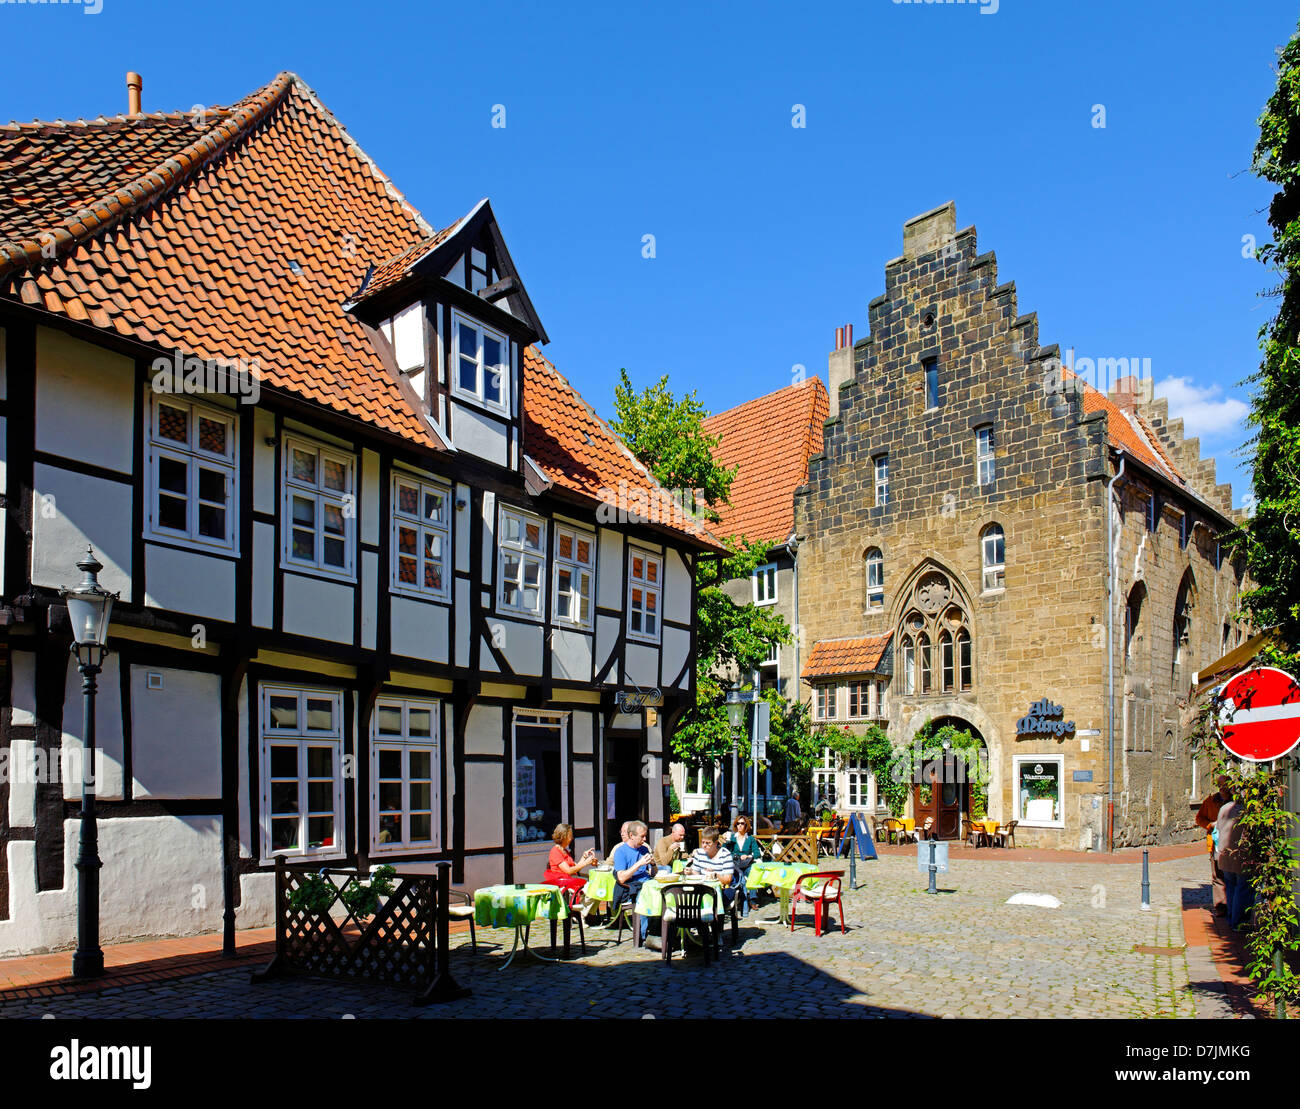 The historical old coin in Ritterstrasse Minden on the Weser, North Rhine-Westphalia, Germany - Stock Image